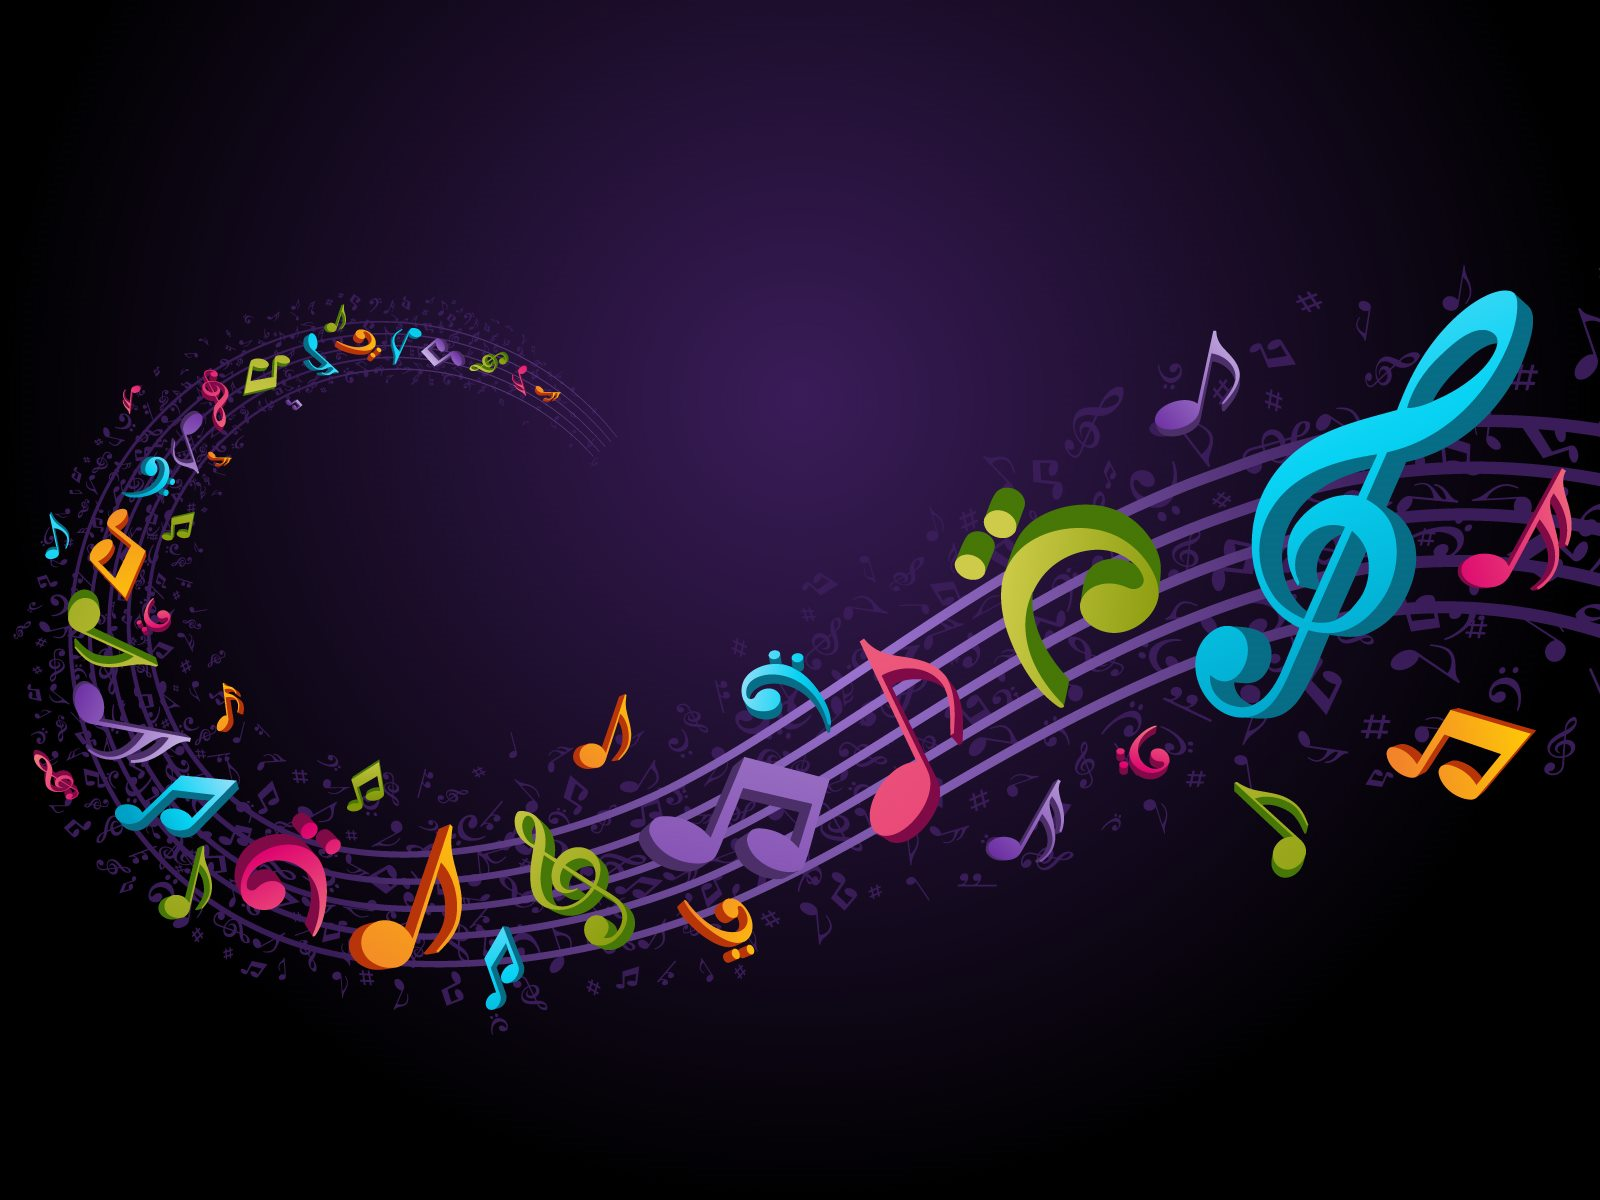 Music Notes Backgrounds Wallpaper